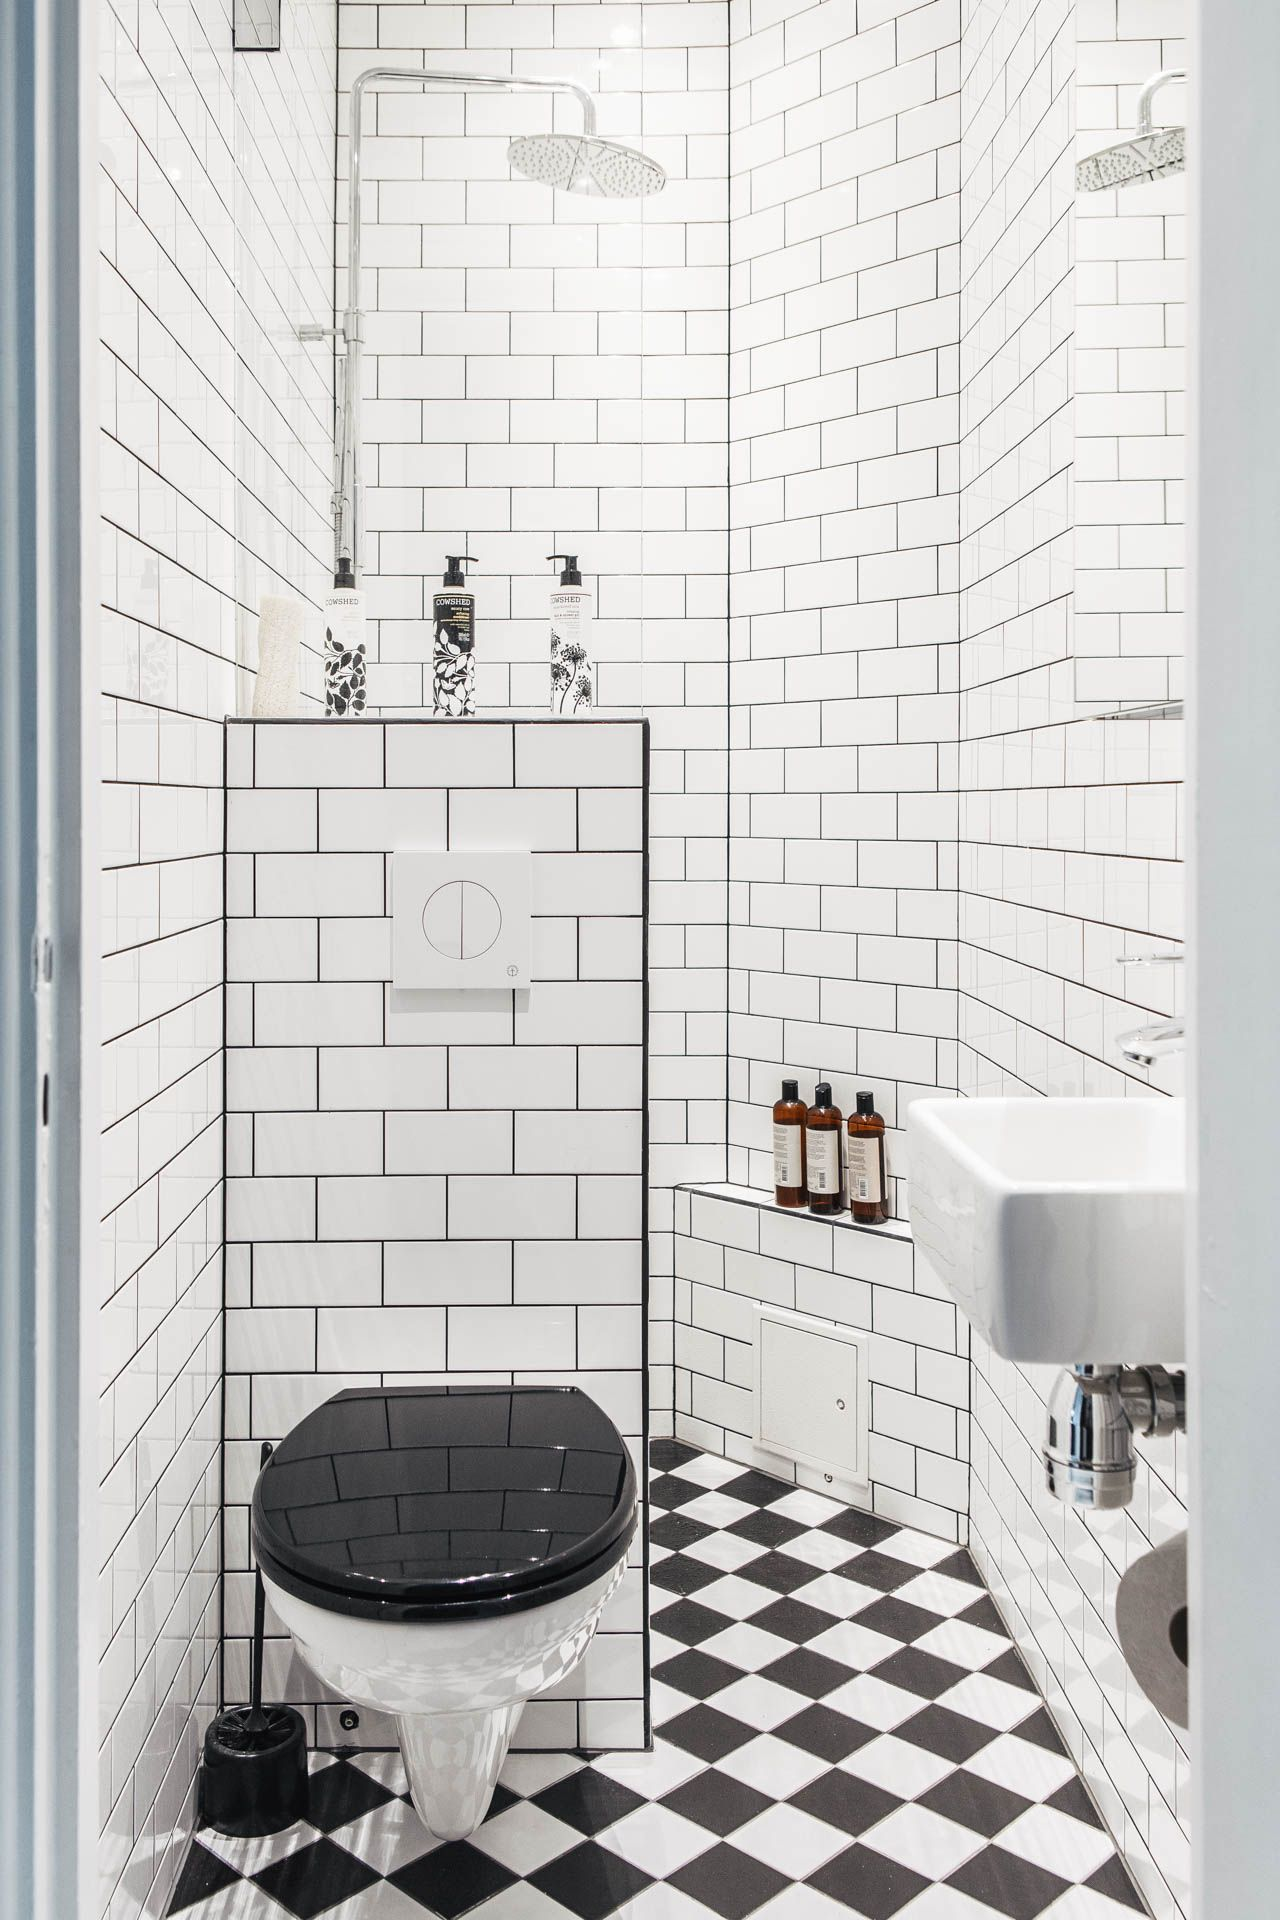 Shop Bagno Small Apartment Follow Gravity Home Blog Instagram Pinterest